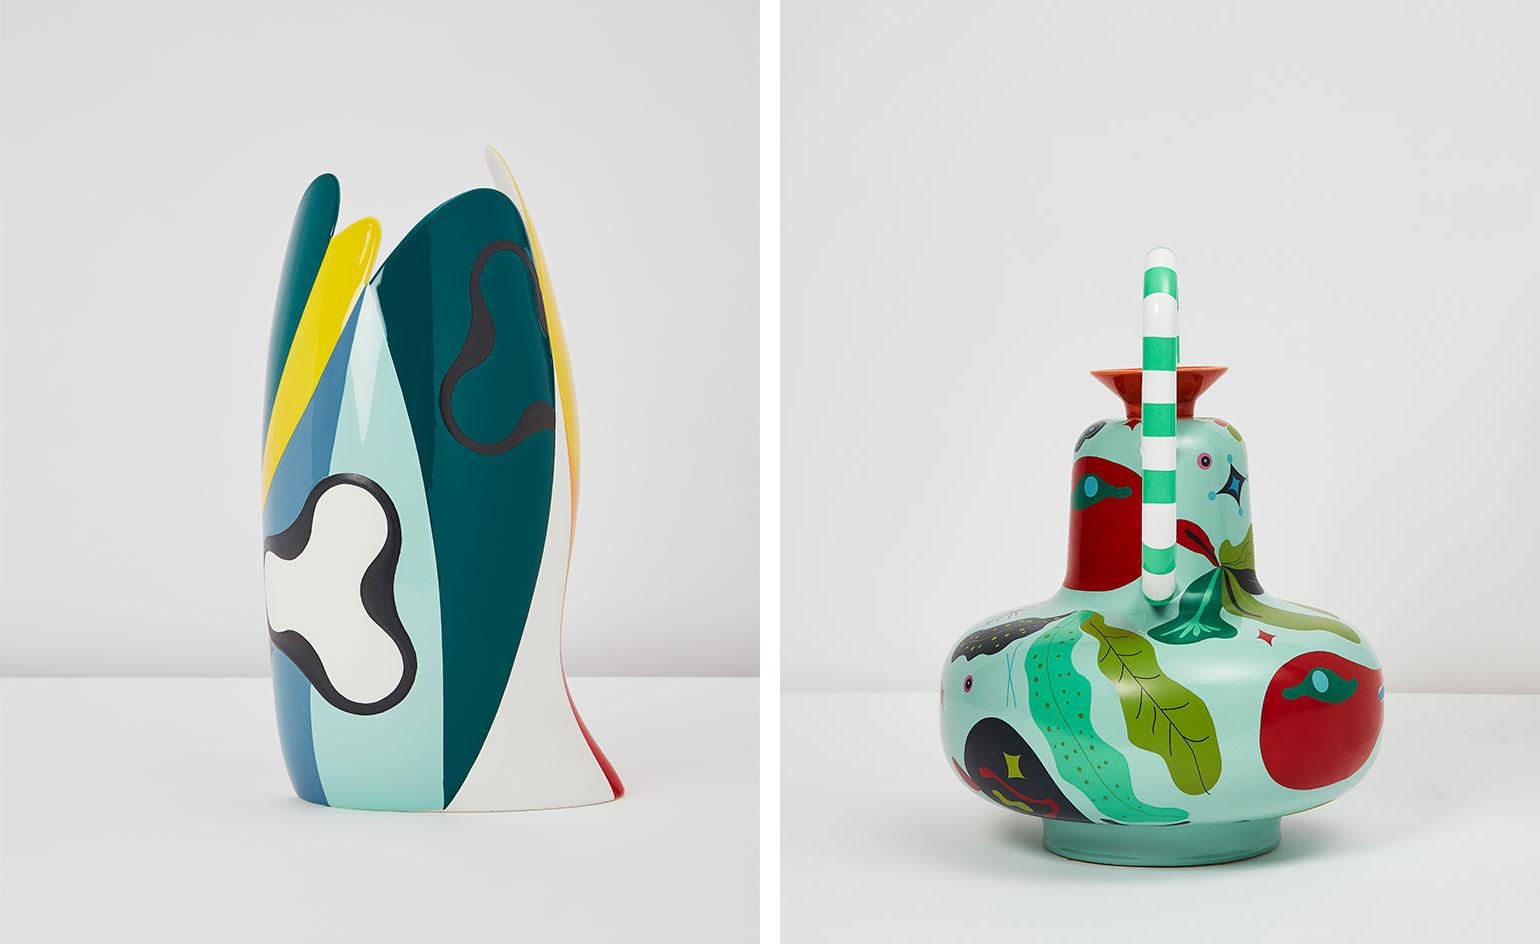 Henri Matisse's legacy lives on with new brand launching at FIAC